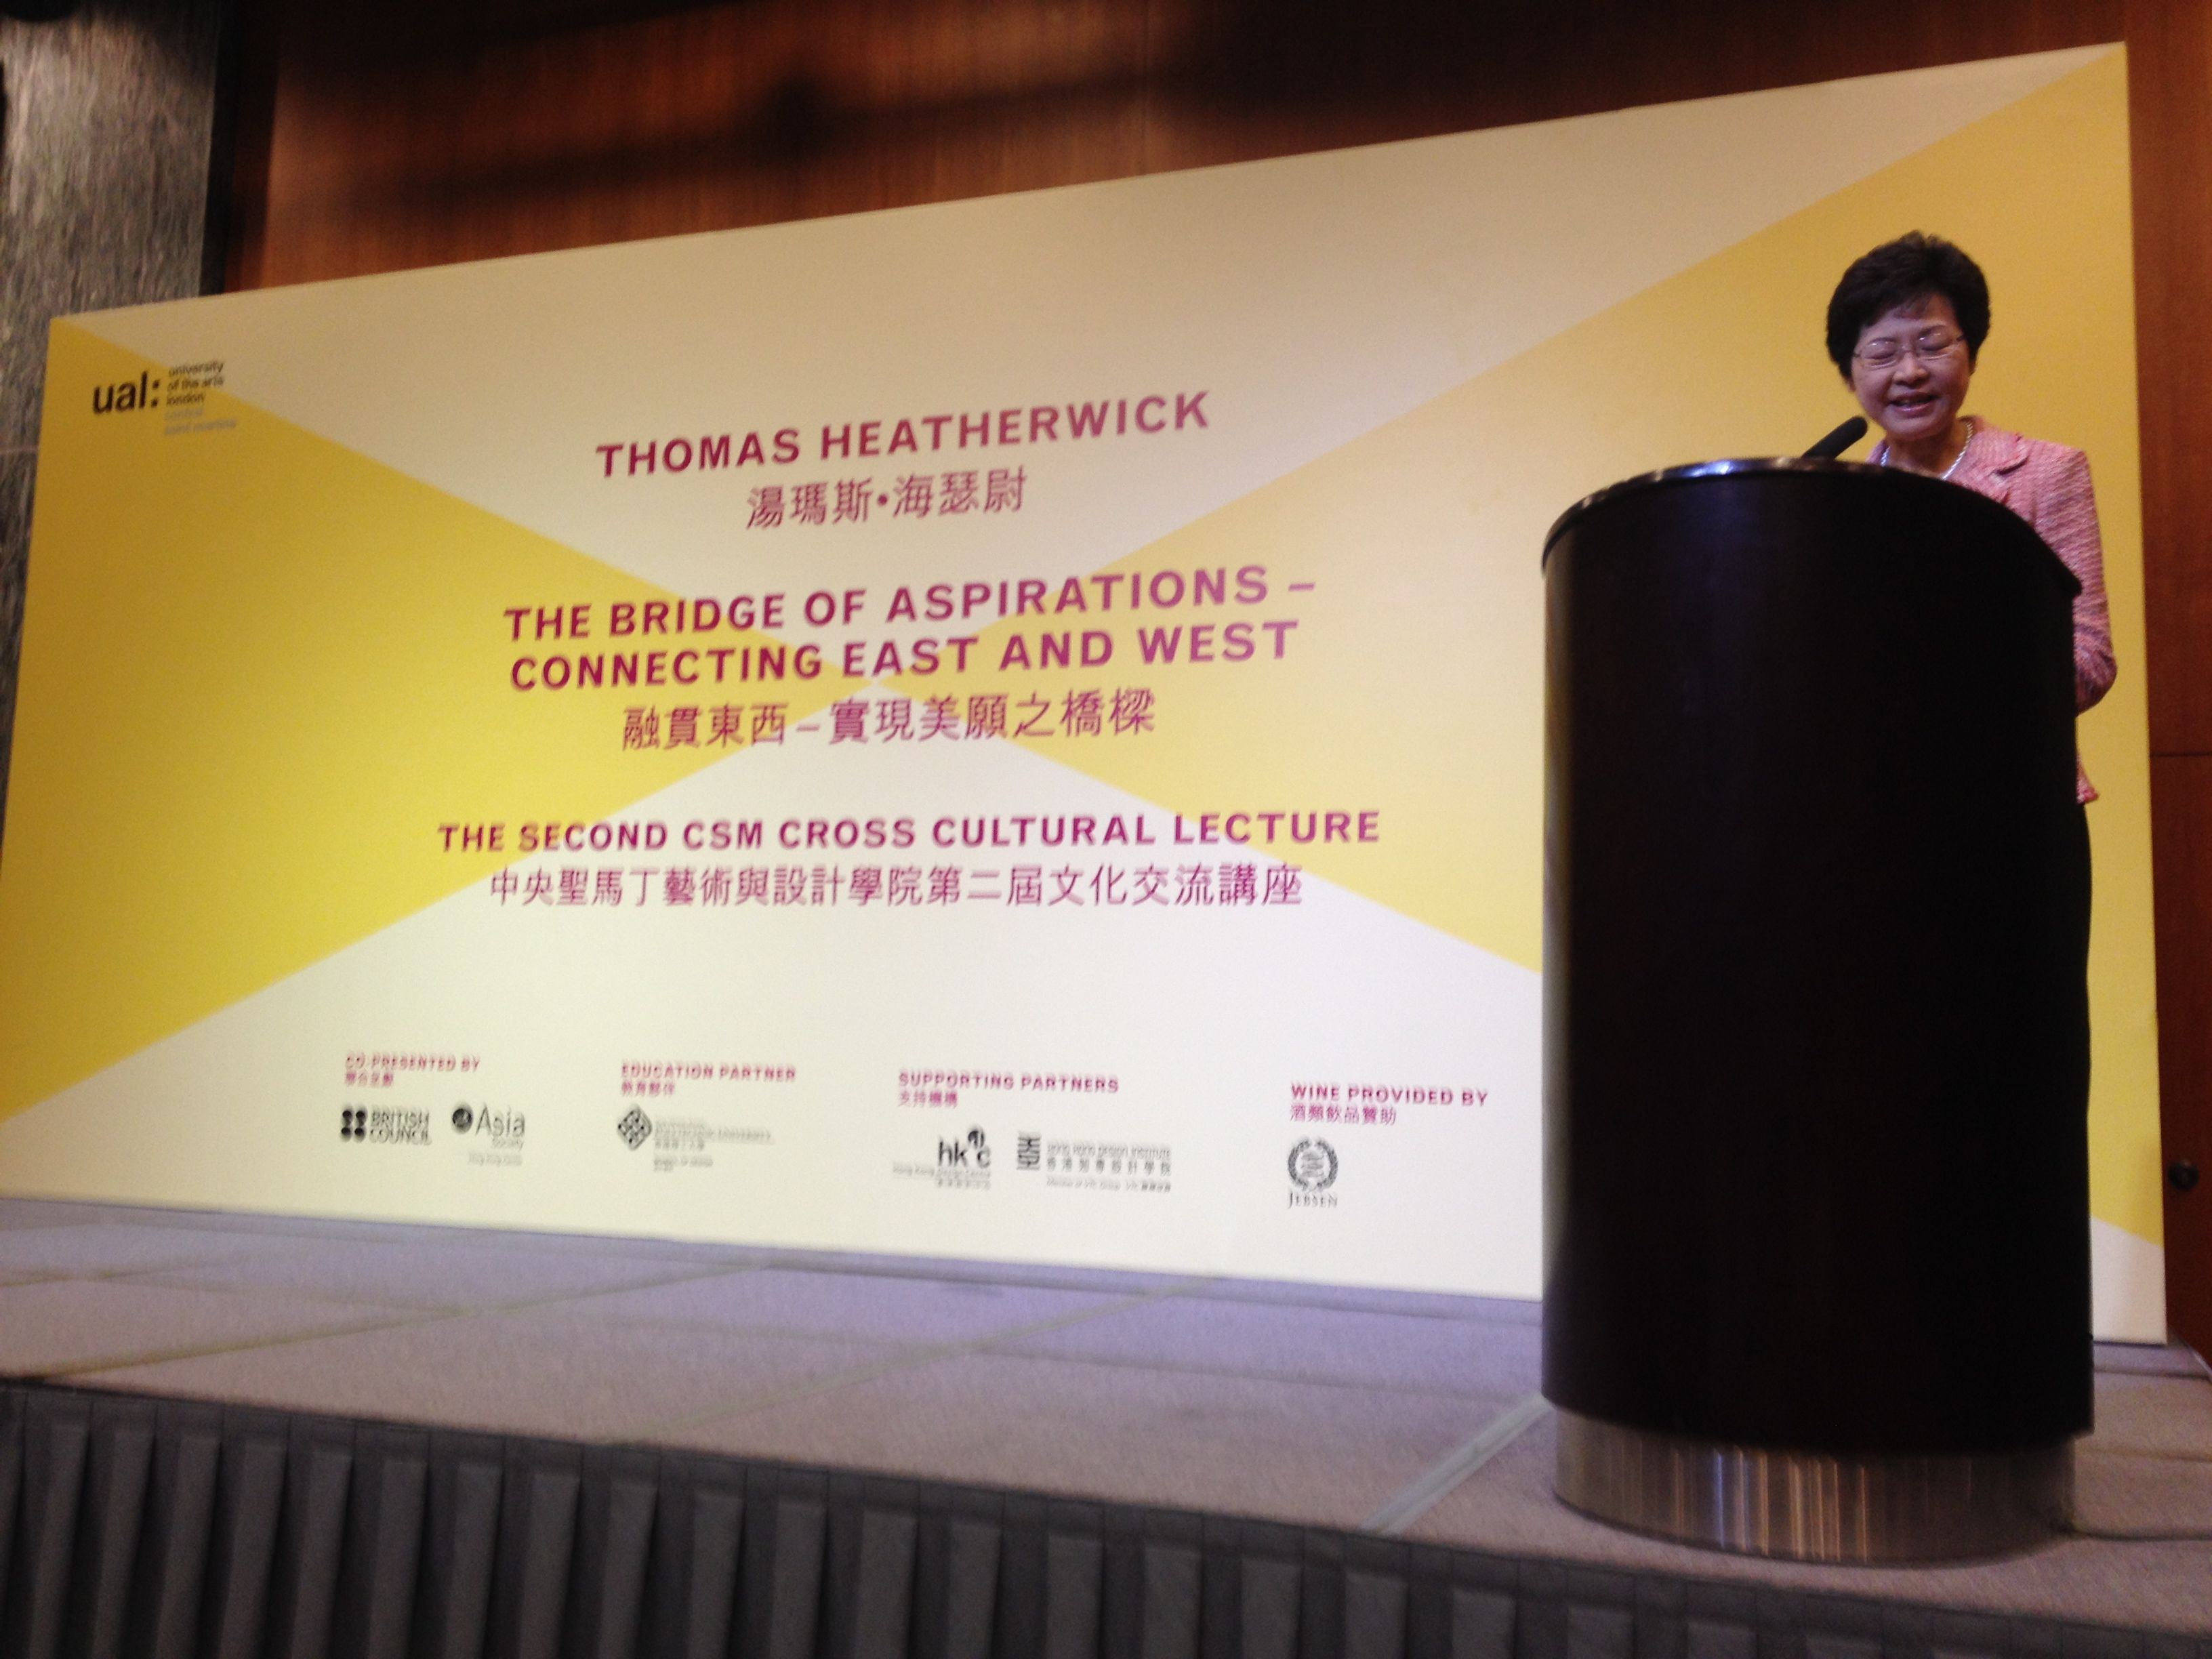 Carrie Lam, Chief Secretary of Hong Kong, introducing the lecture.